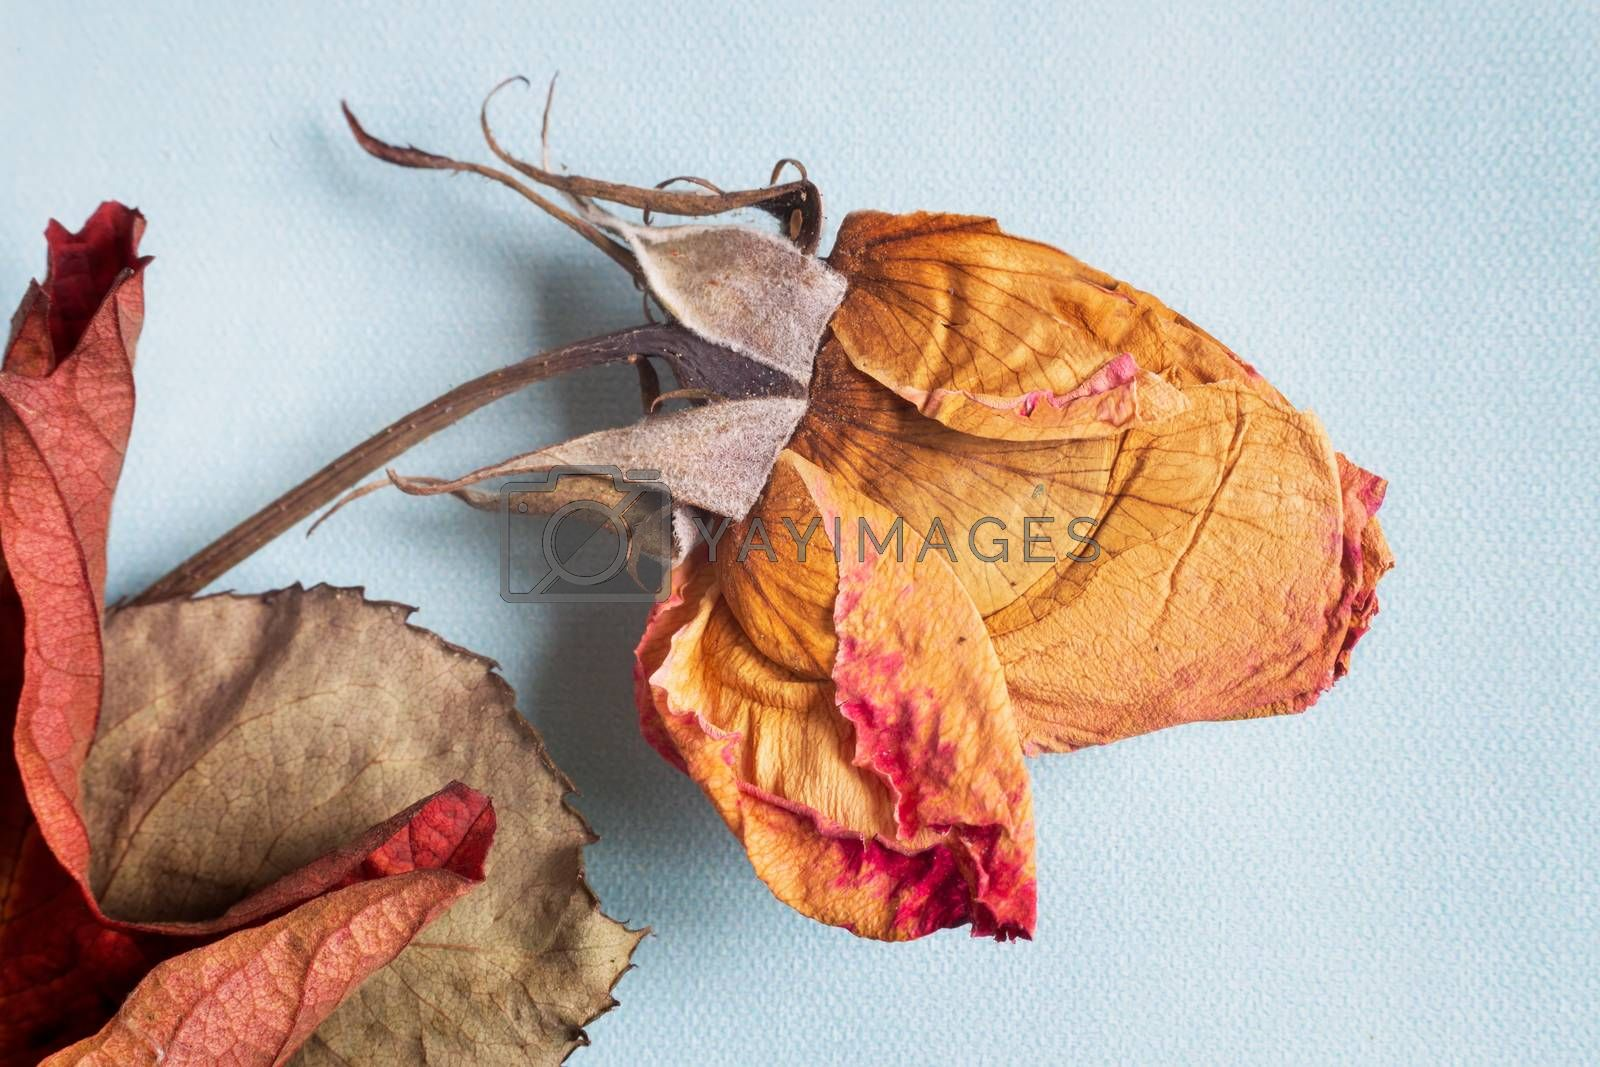 On a light background, a dried rose flower with leaves. Presented in close-up, top view.